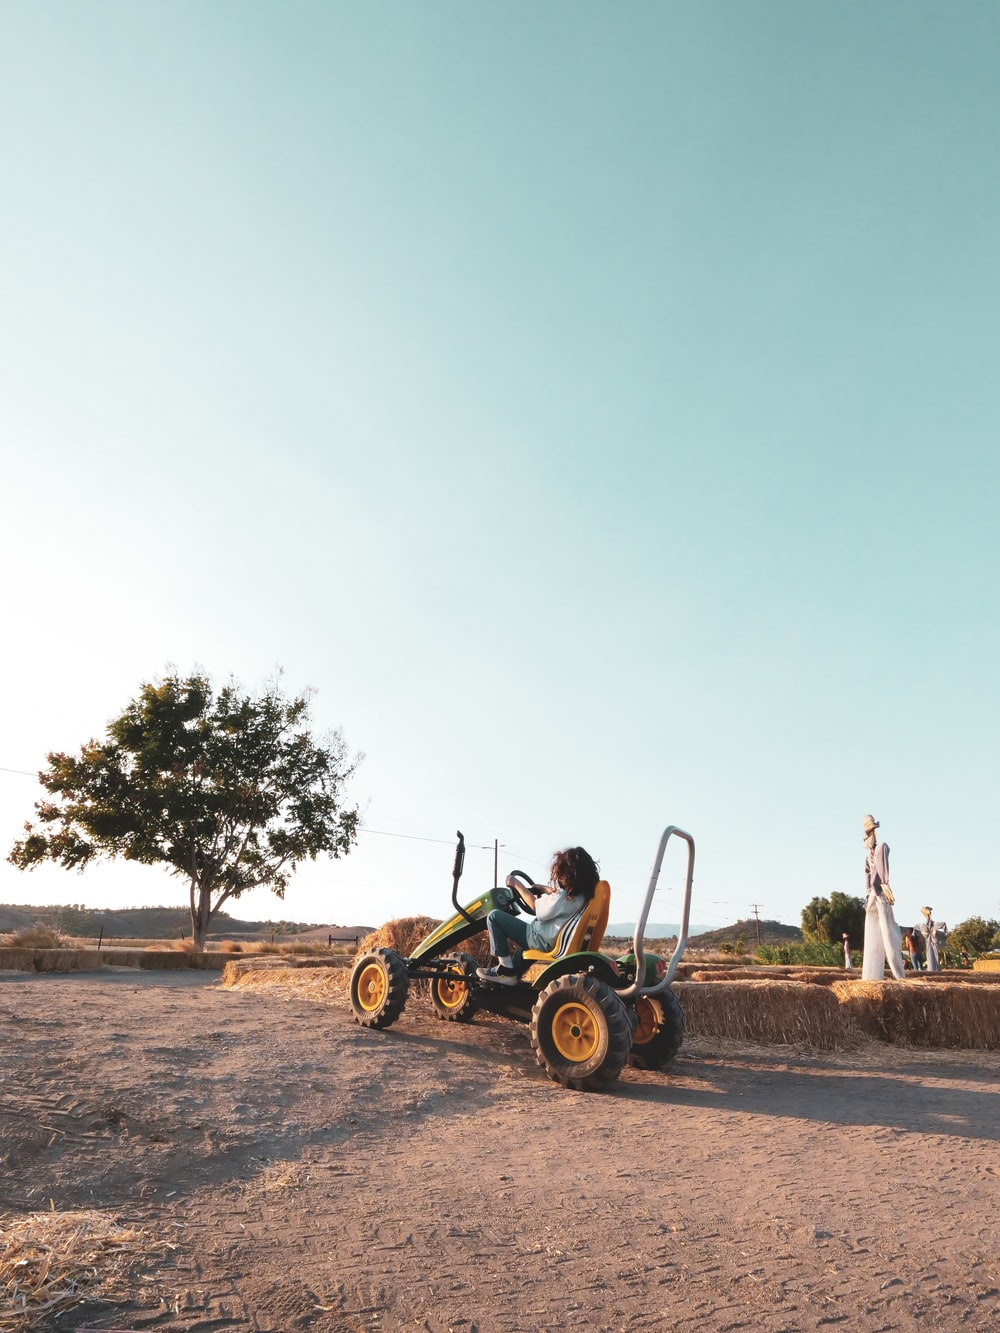 man in green shirt riding on yellow and black dune buggy